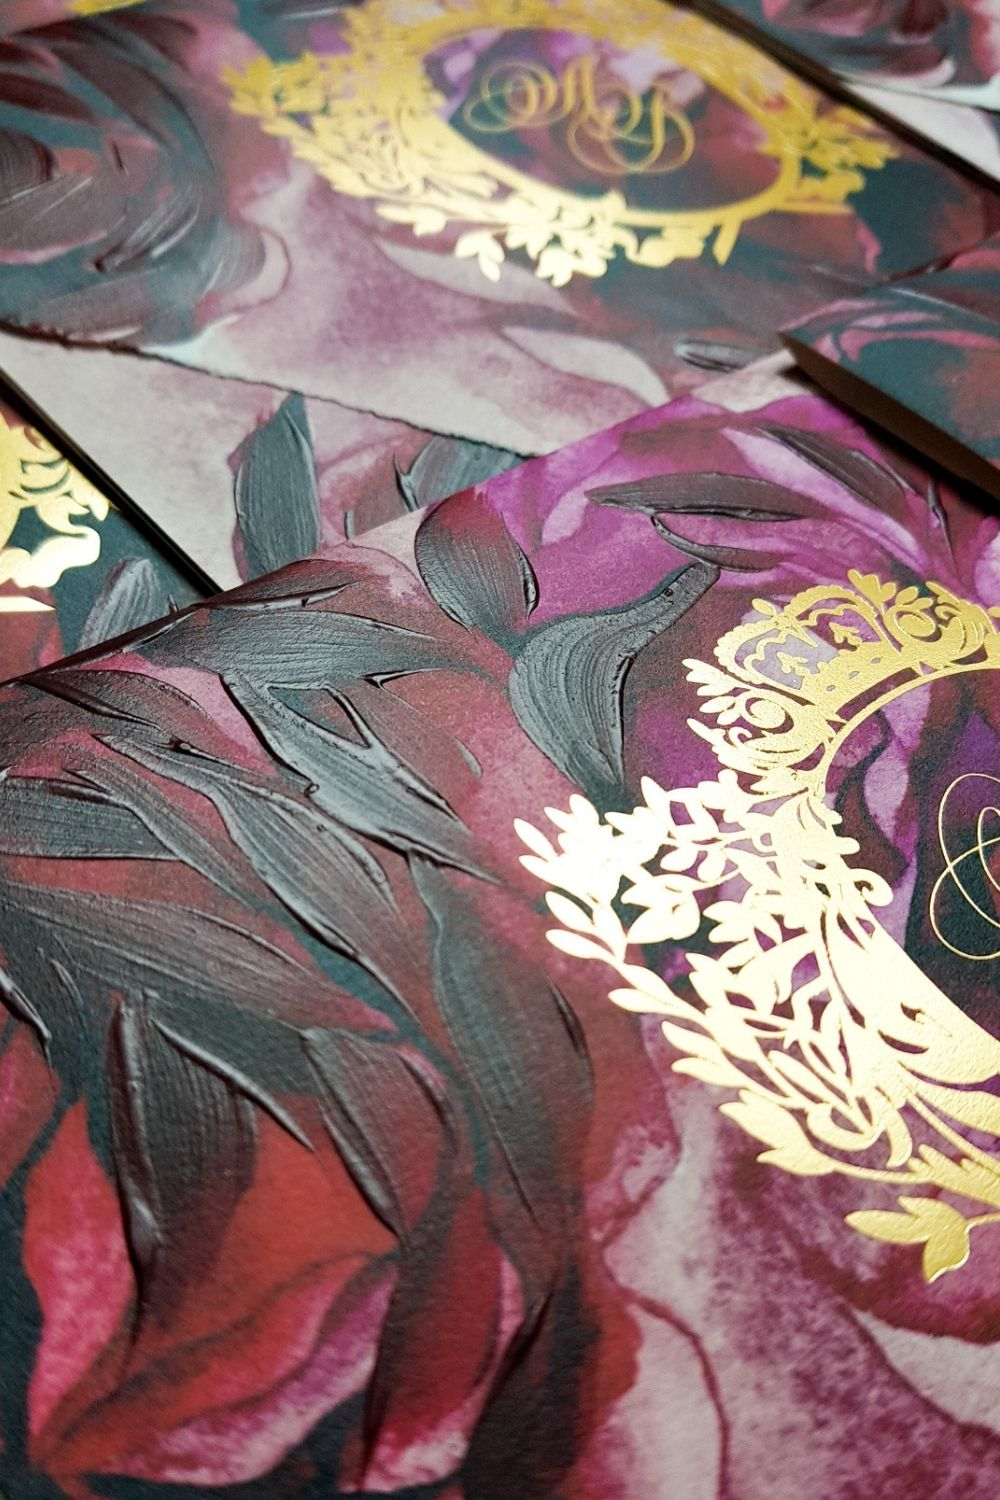 Hand painted red floral wedding invitations suite for a small micro destination wedding